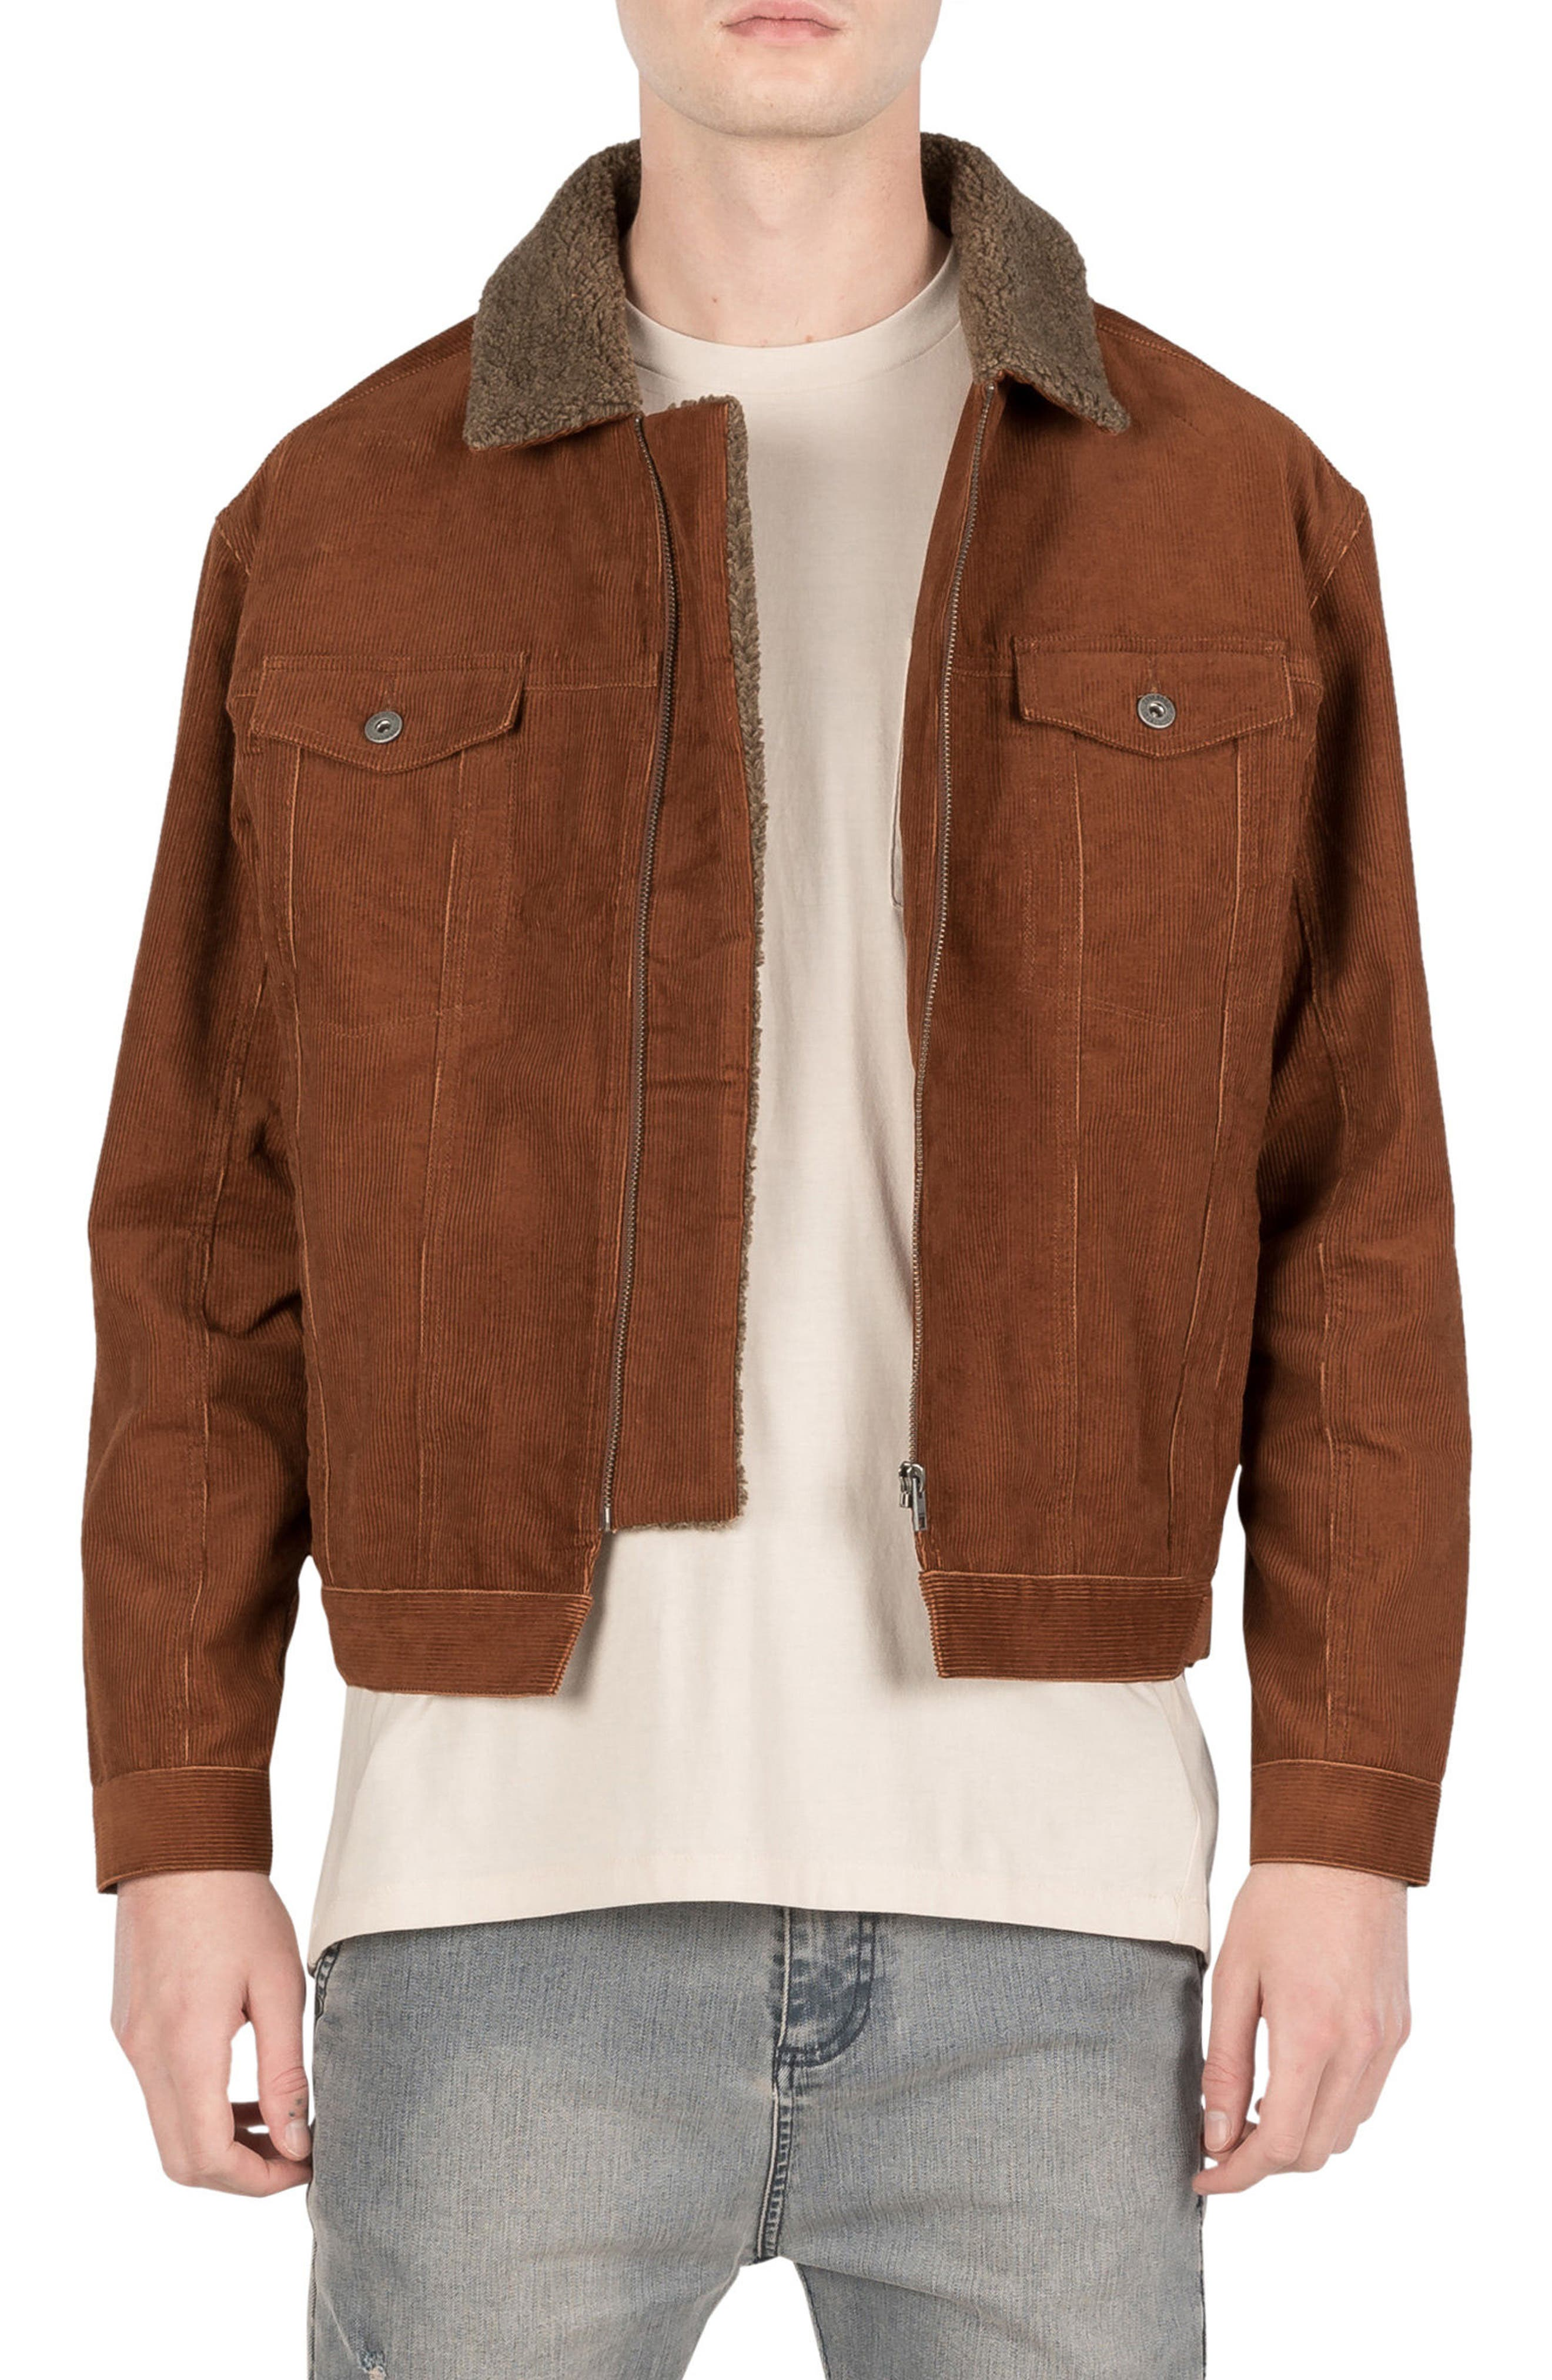 Snitch Corduroy Jacket,                             Main thumbnail 1, color,                             DARK BRONZE